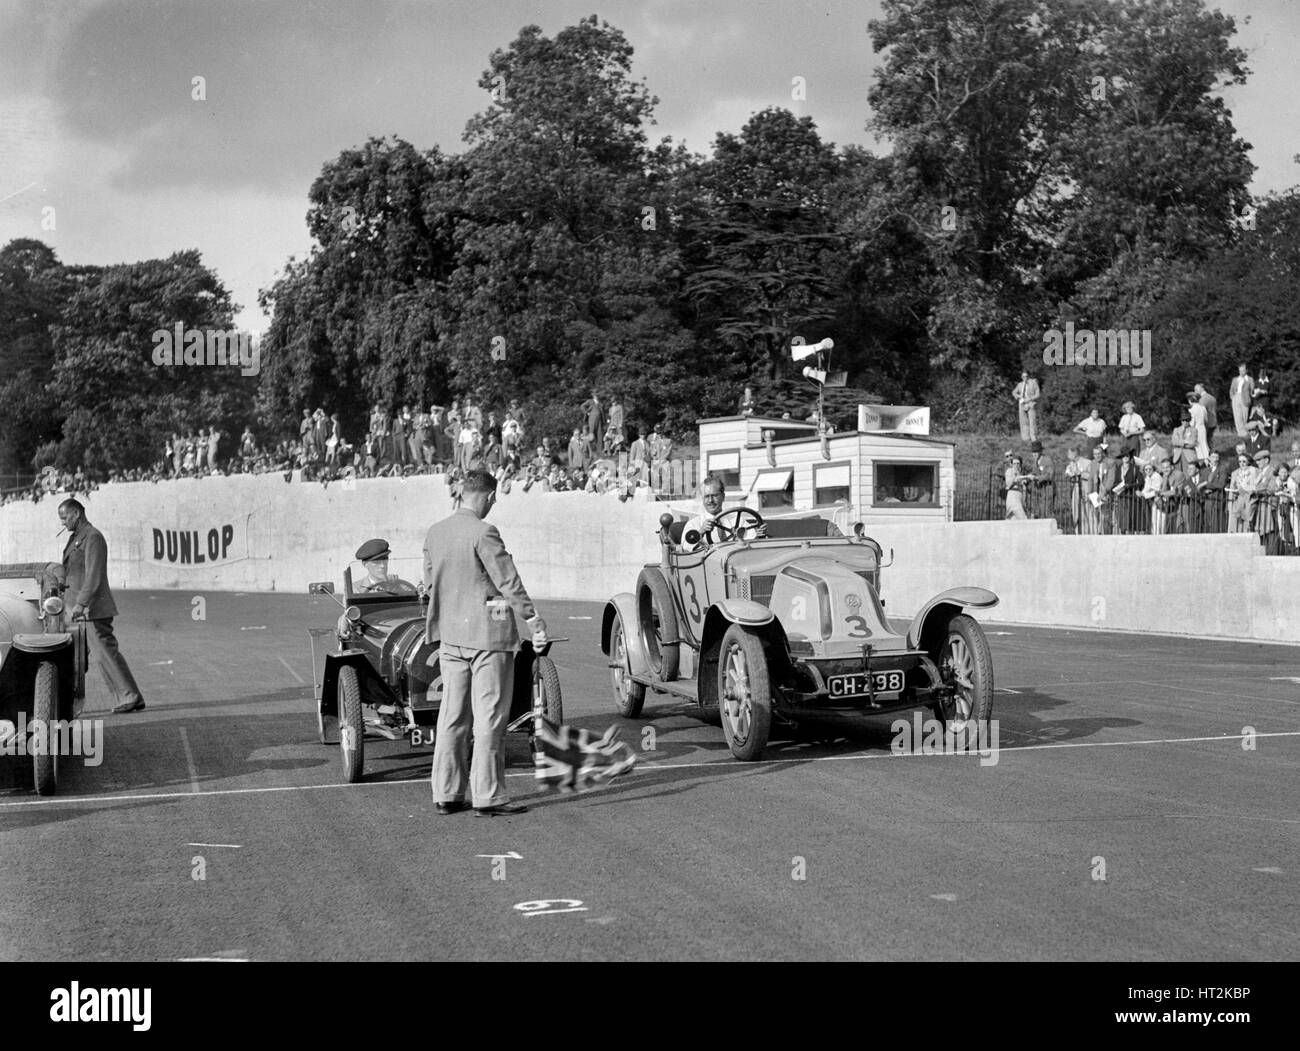 Bugatti and Renault on the start line for the Vintage Cup, Crystal Palace, 1939. Artist: Bill Brunell. - Stock Image